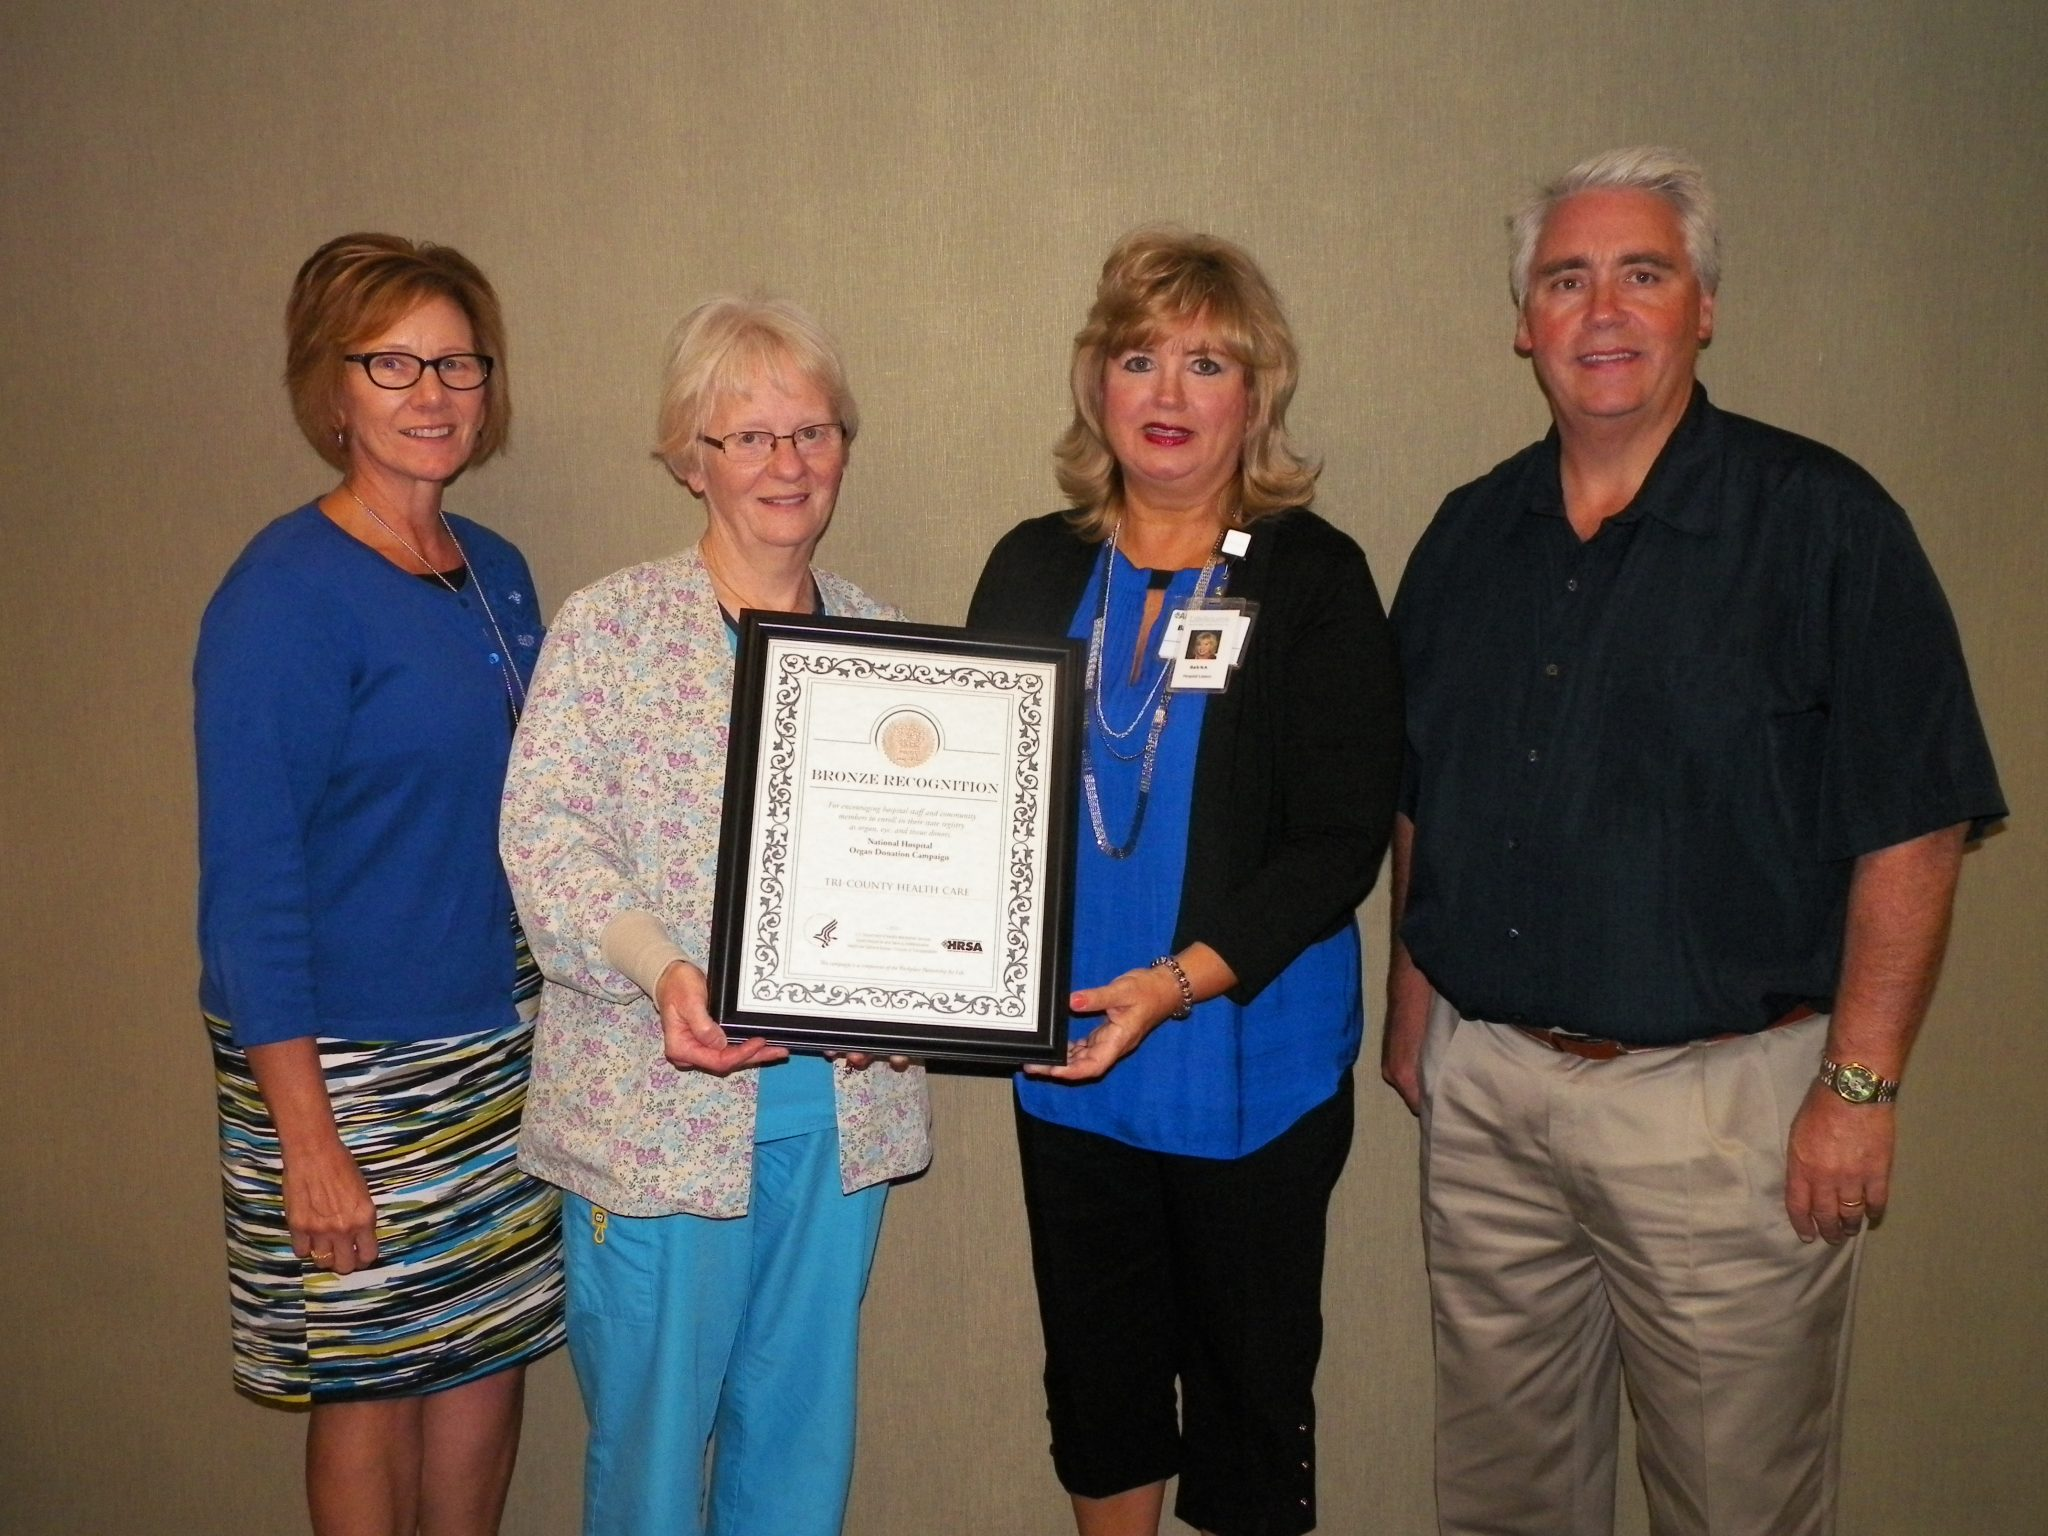 Barb Nelson-Agnew from Life Source presenting award to Lois Miller, alongside Kathy Kleen (left) Chief Nursing Officer and CEO/President Joel Beiswenger (far right).